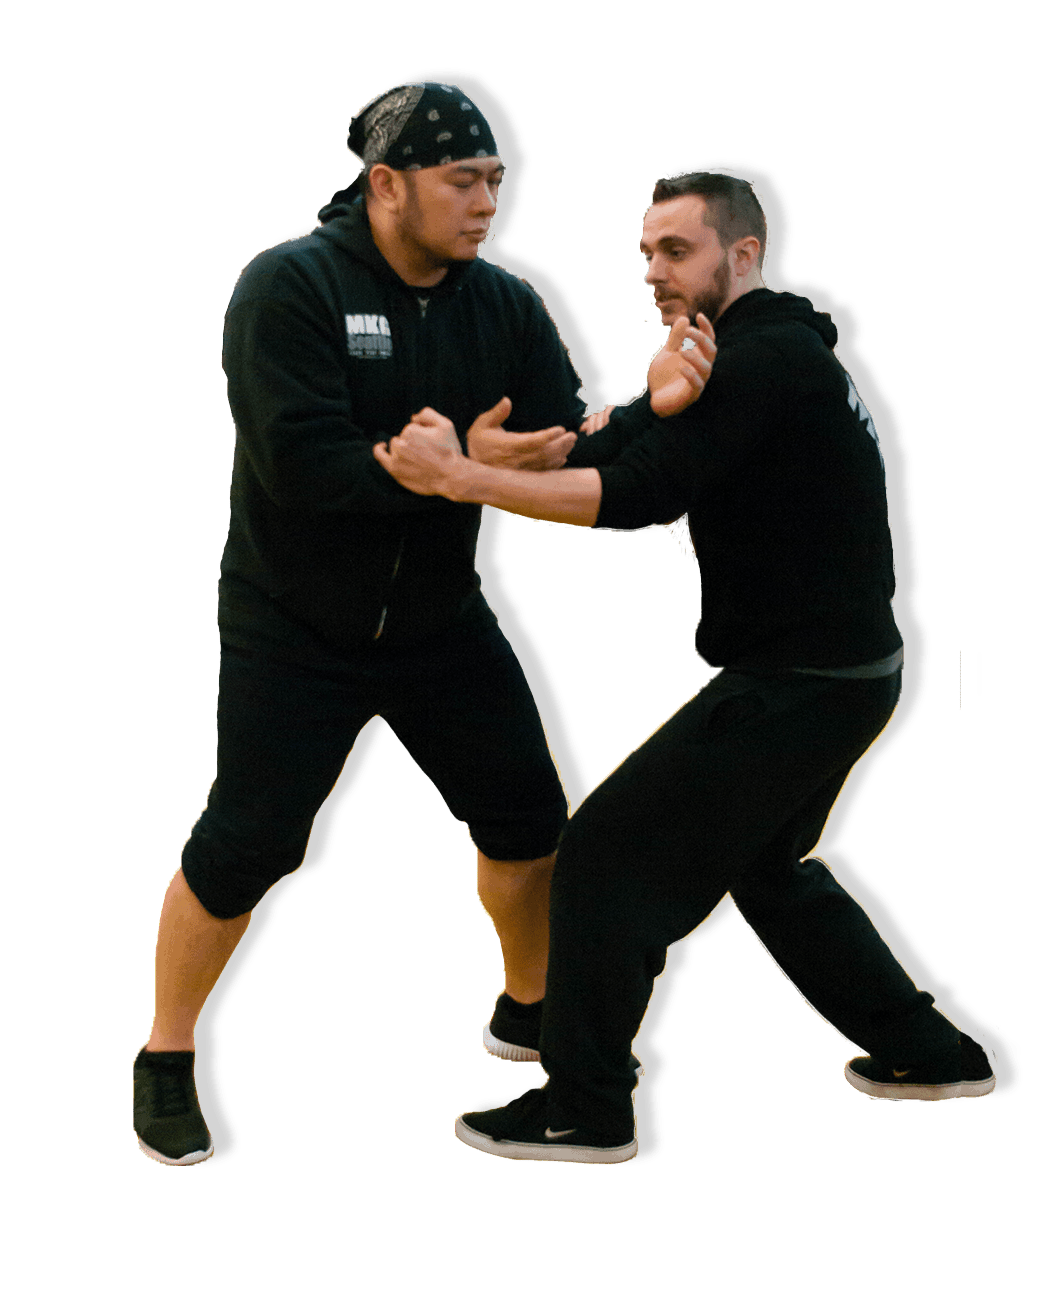 JKD classes or Jeet Kune Do classes in Seattle